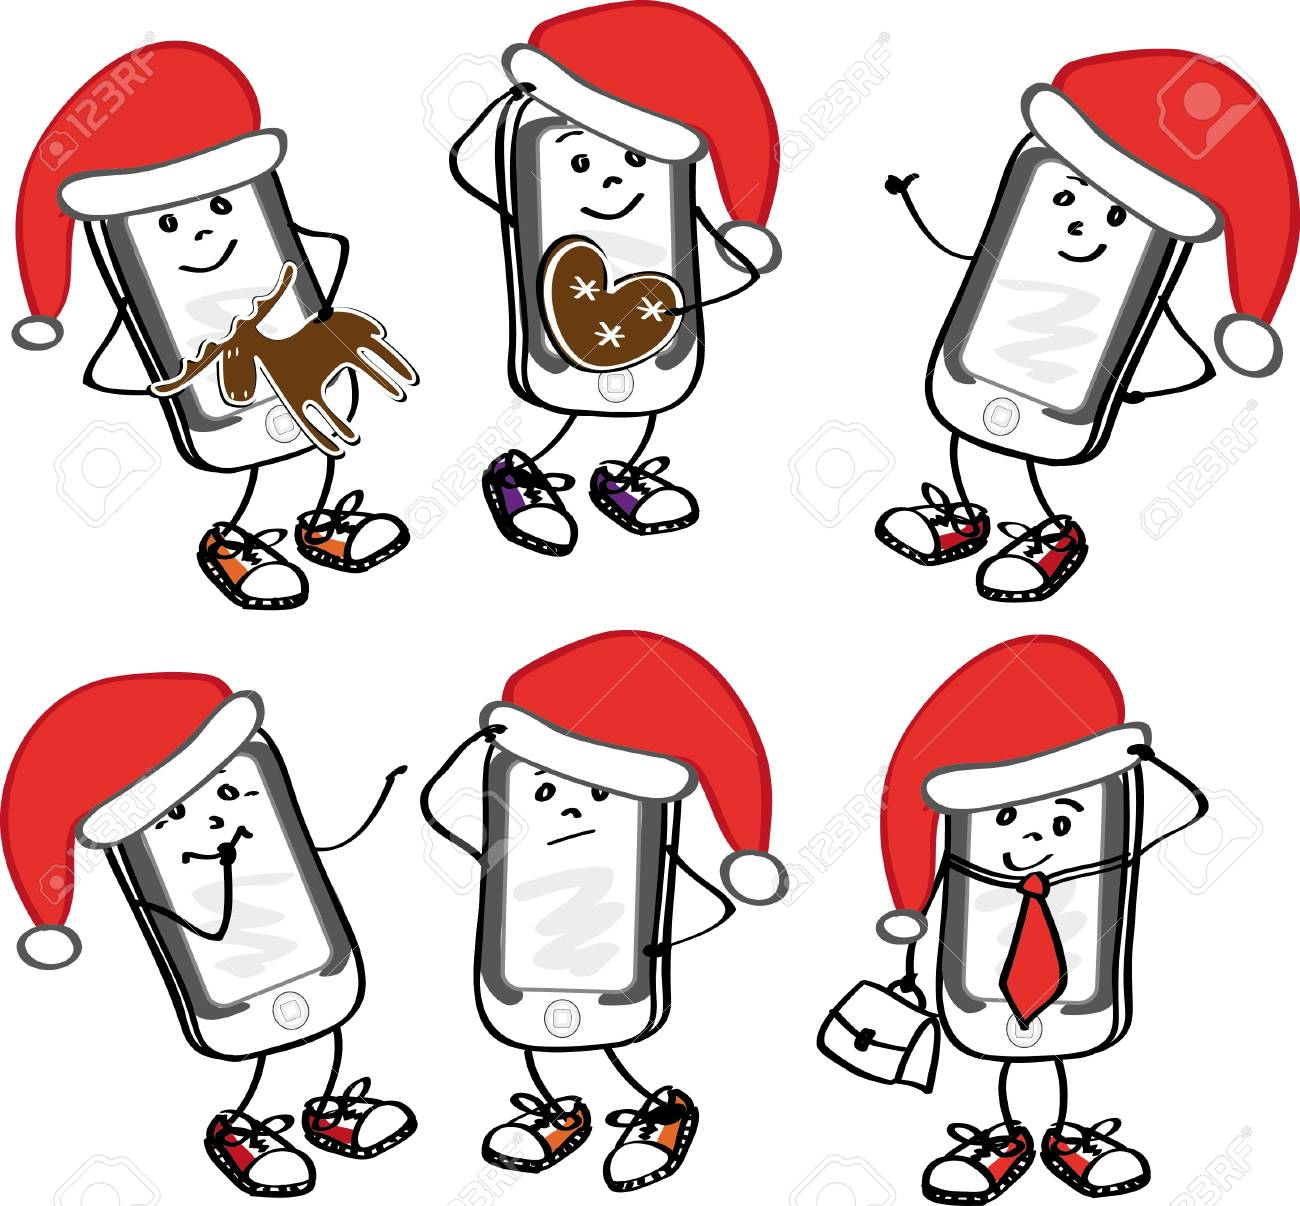 Illustration of phones with emotions Stock Vector - 10979623